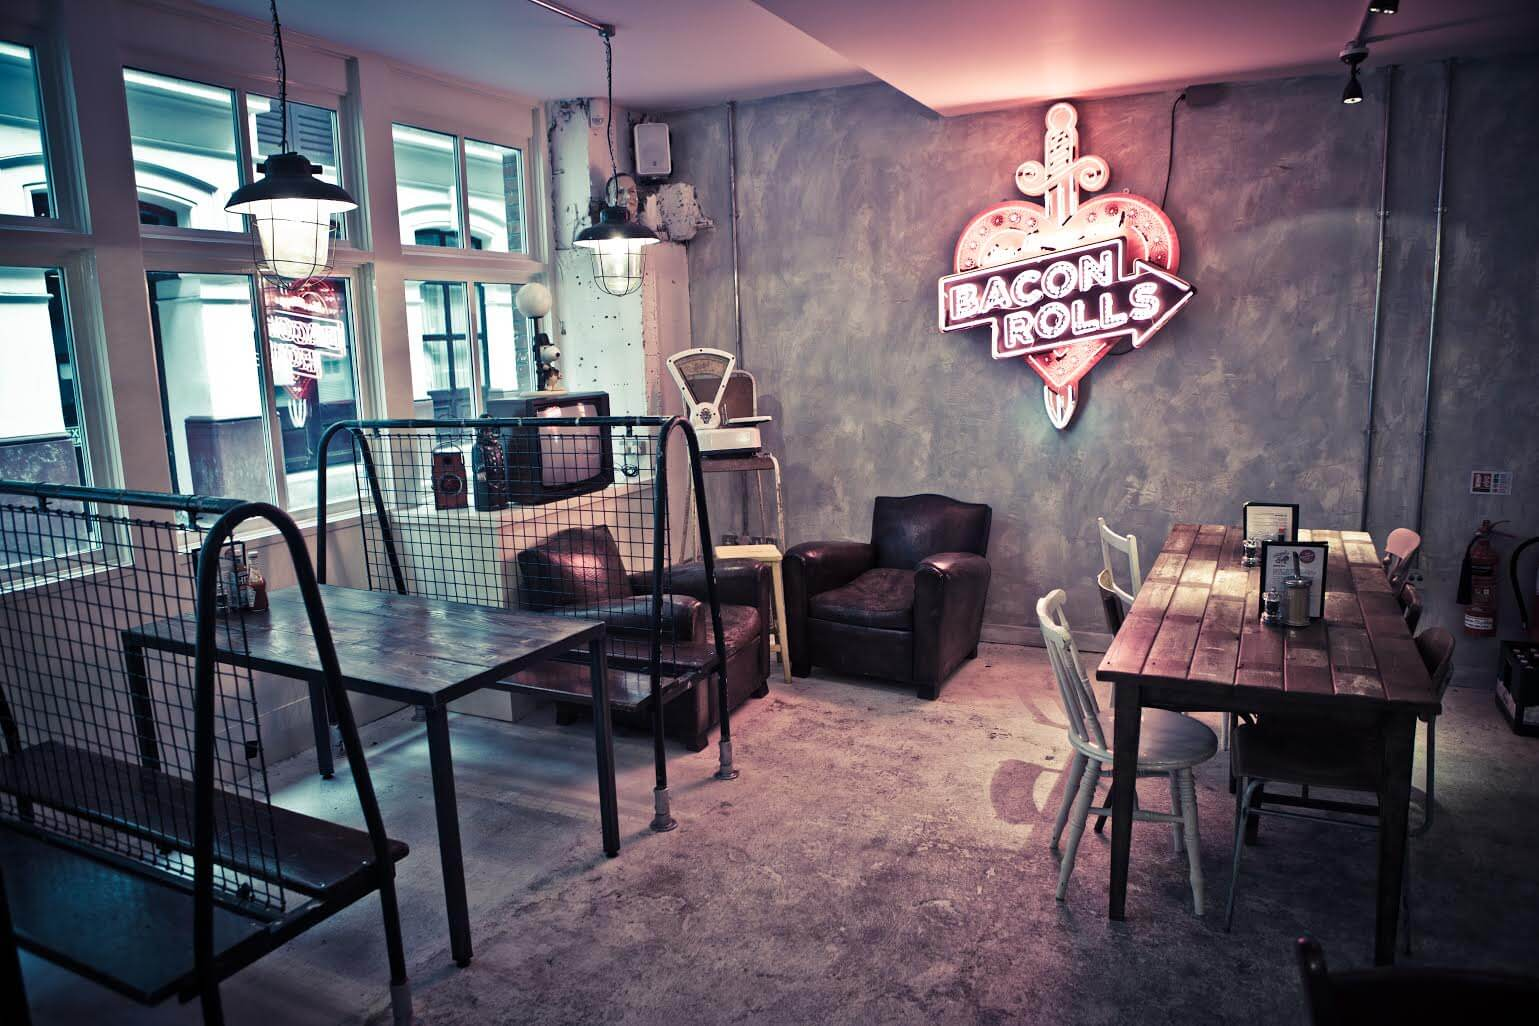 best restaurants in london, london restaurants, restaurants in london, Things to Do in London, what's on in london, events in london, free london, london restaurants, best restaurants in london, restaurants in london, london, this weekend in london, london food, foodie, breakfast in london, breakfast london, brunch in london, london brunch, restaurants in central london,